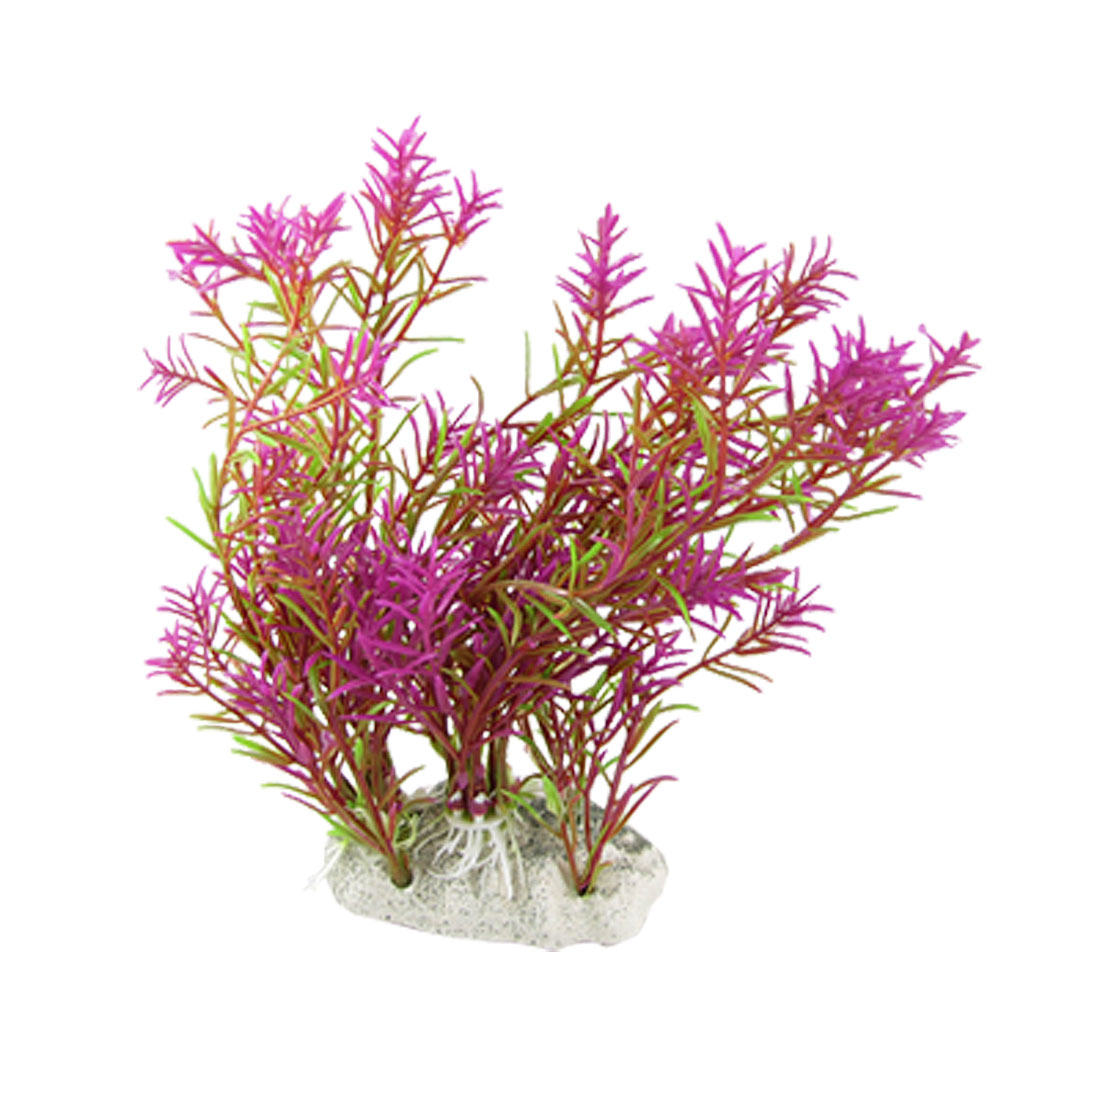 Artifical Purple Green Grass Aquascaping Plants for Aquarium